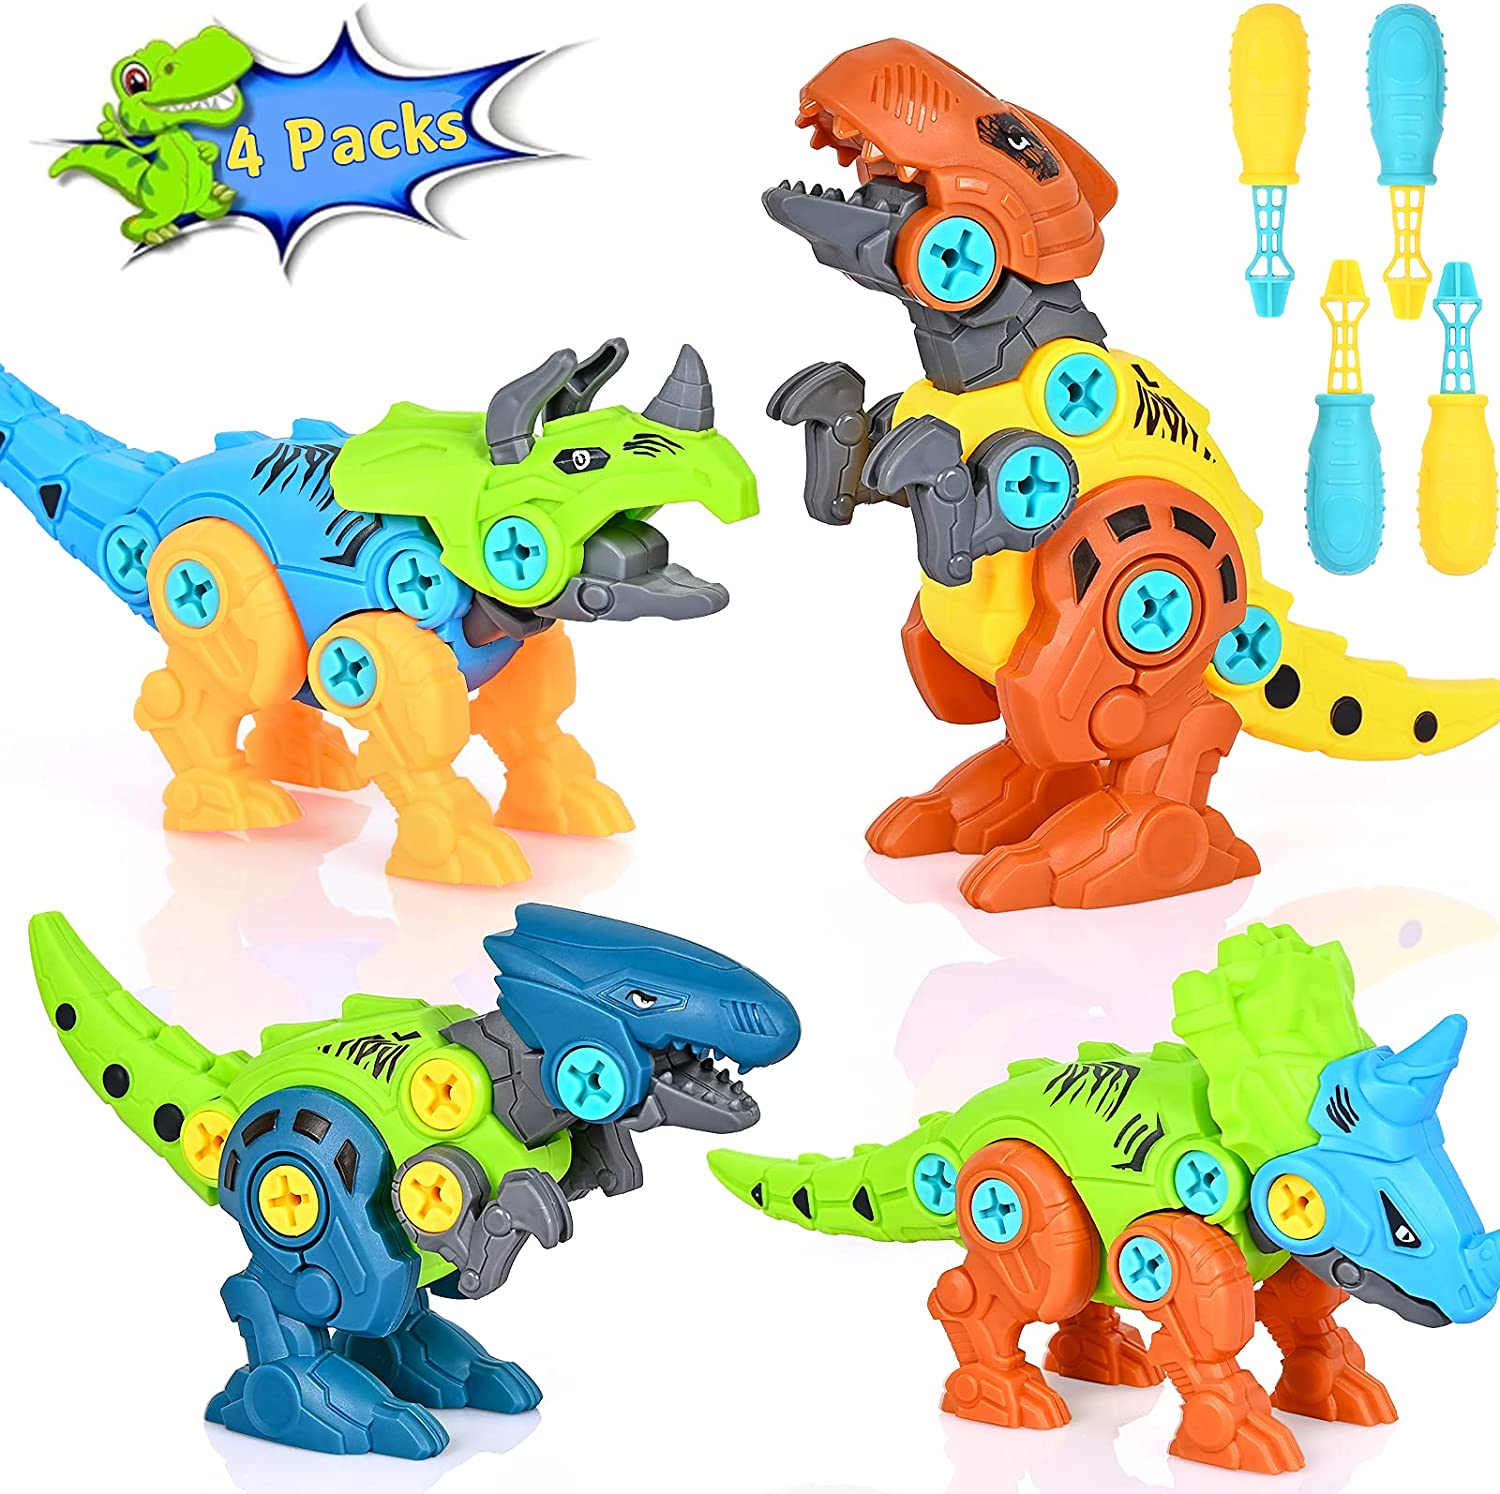 Chak's Choice 4 Packs Take Apart Dinosaur Toys for Boys Building Toys Set with Plastic Screwdriver Construction and Screw Engineering Play Kit Education Toys for Age 3 4 5 6 7 Kids Girls Toddler